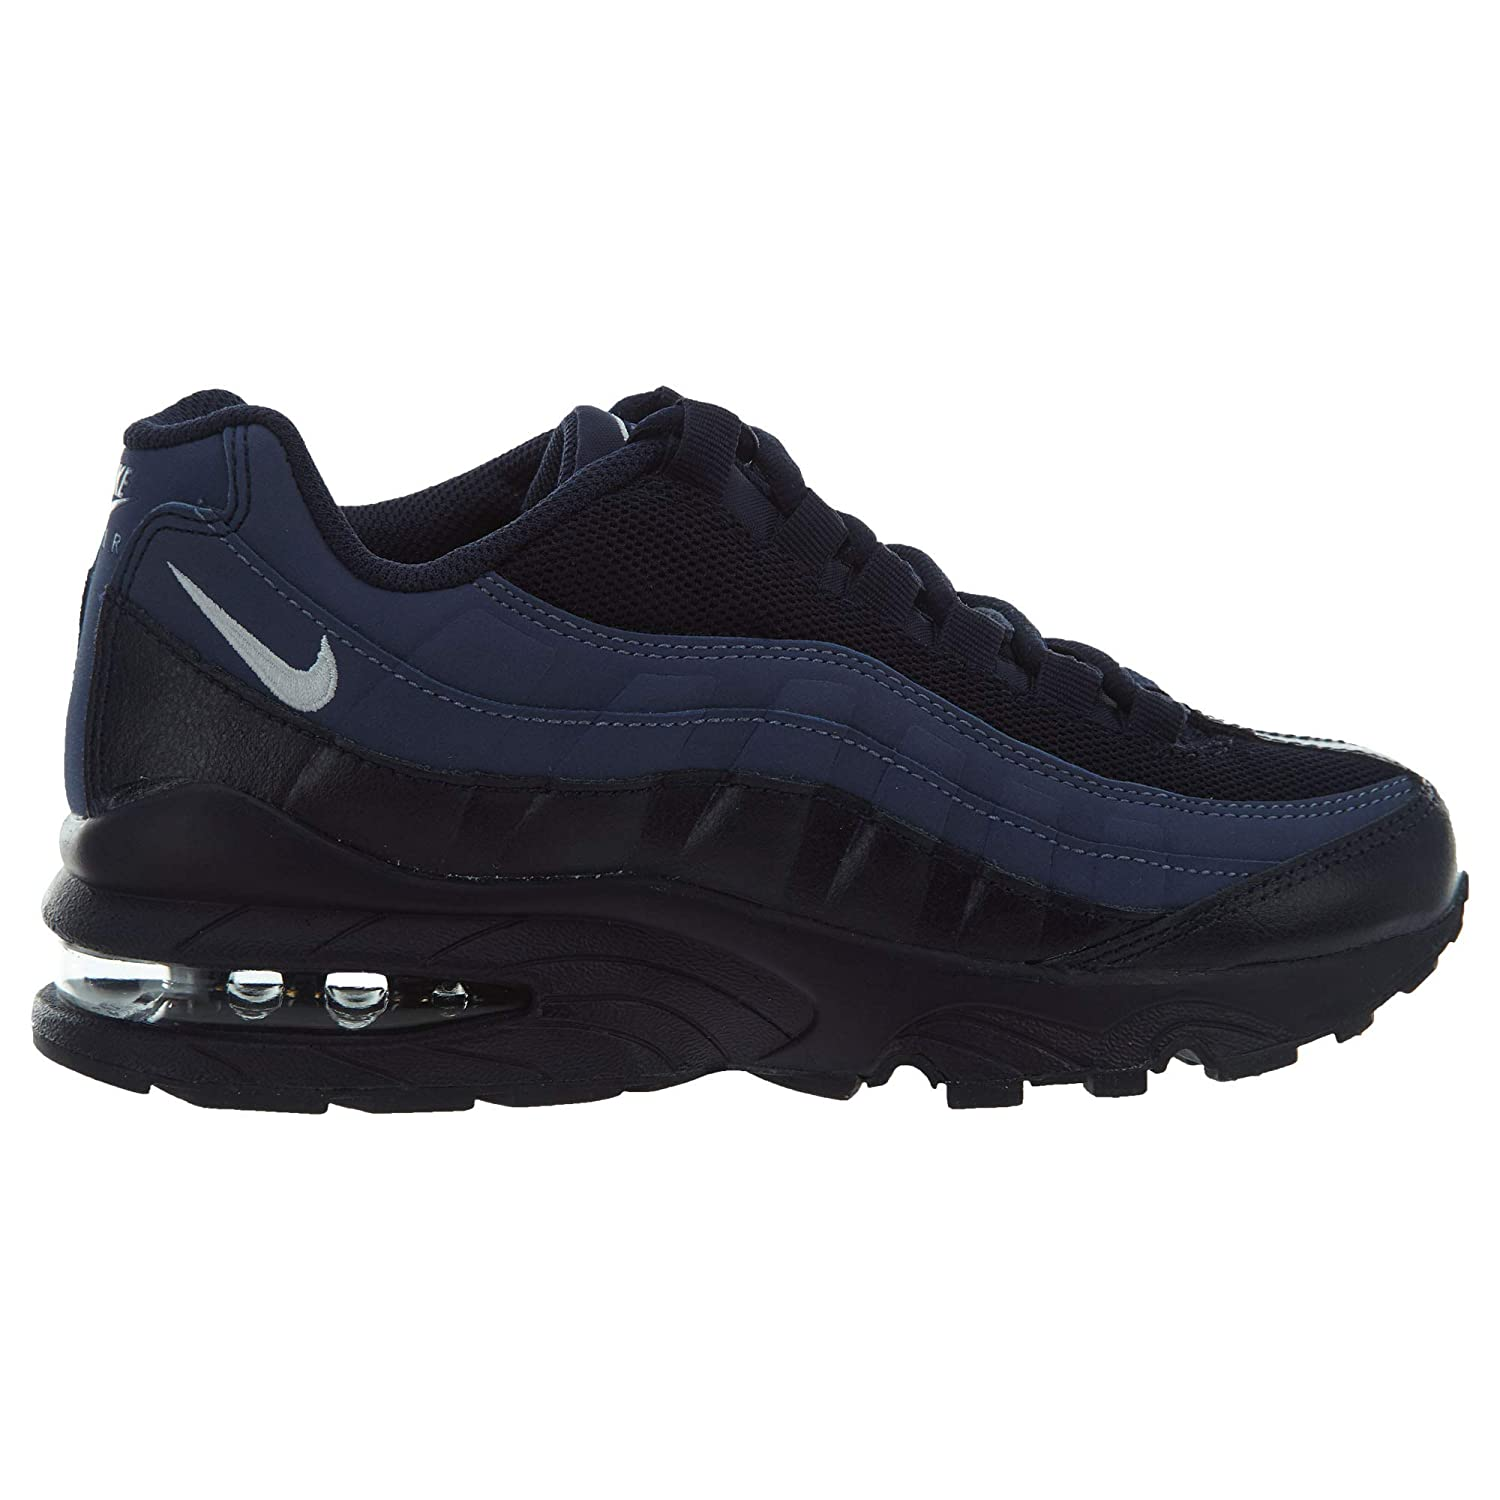 485534e718e1 Amazon.com  Nike Air Max 95  Nike  Shoes